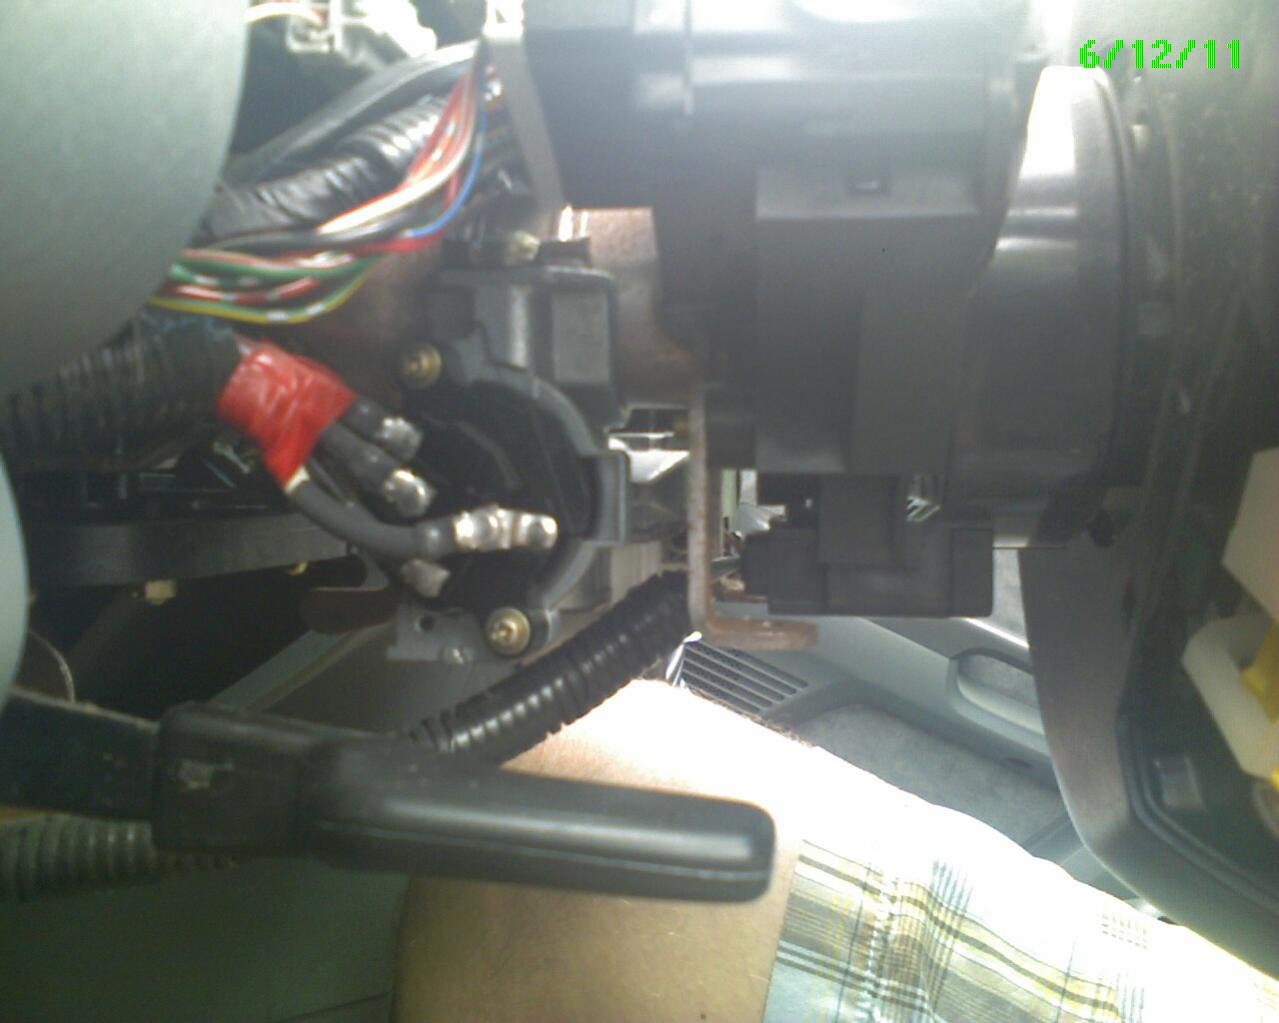 2003 Pilot Ignition Switch Problem Solution Honda 2006 Electrical Troubleshooting Manual Original Click Image For Larger Version Name Photo 061211 004 Views 7866 Size 909